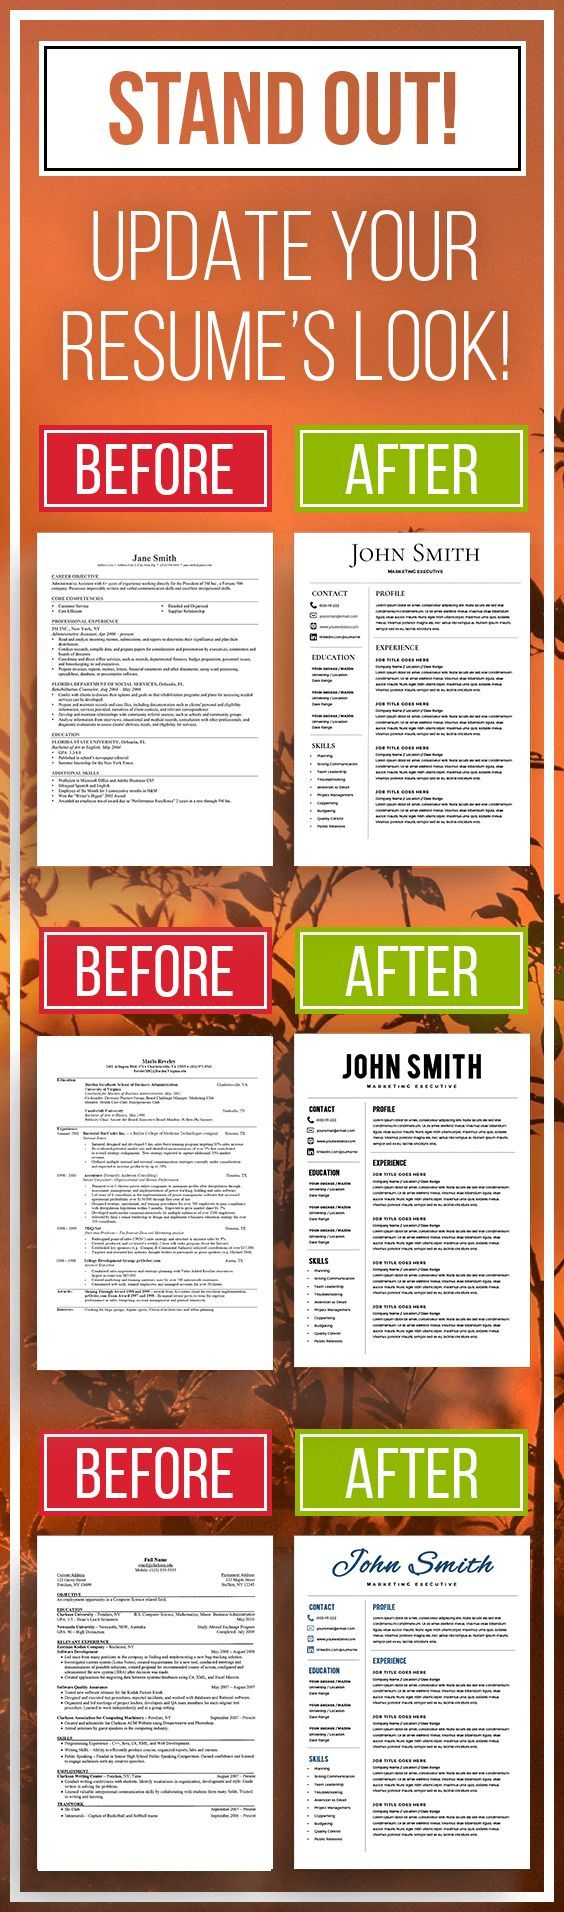 Microsoft Word Resume Templates Including A Cover Letter And An